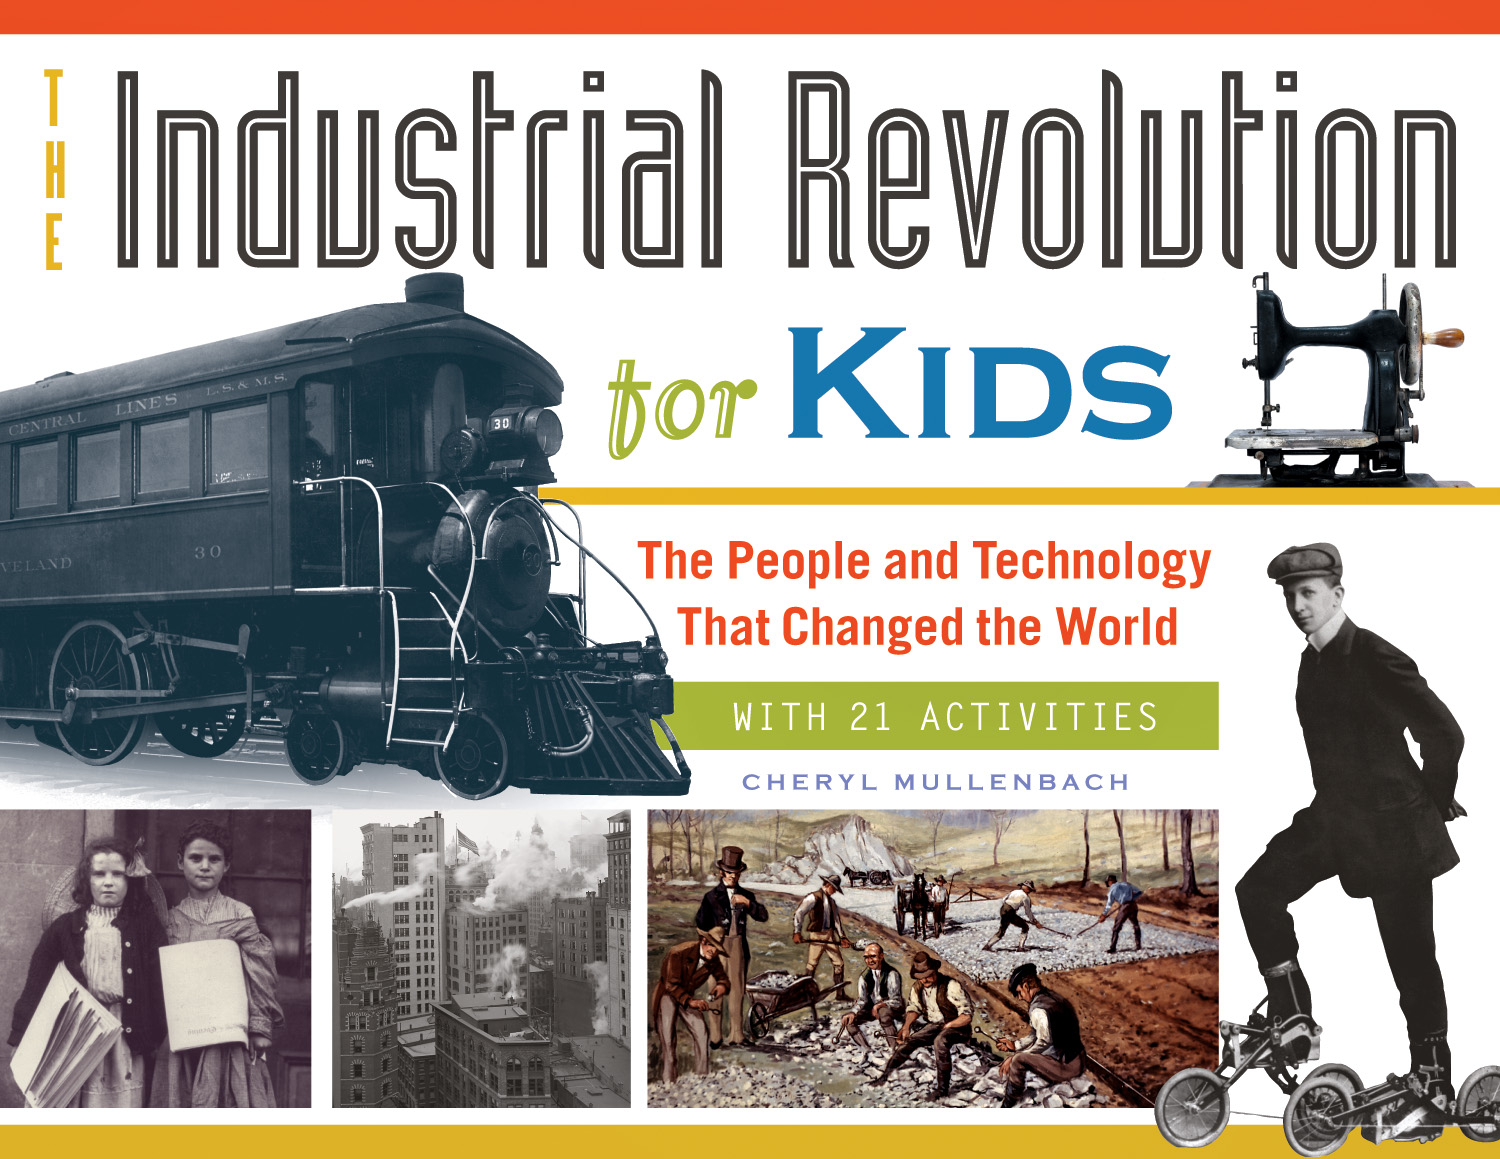 The Industrial Revolution for Kids: Interview and Giveaway